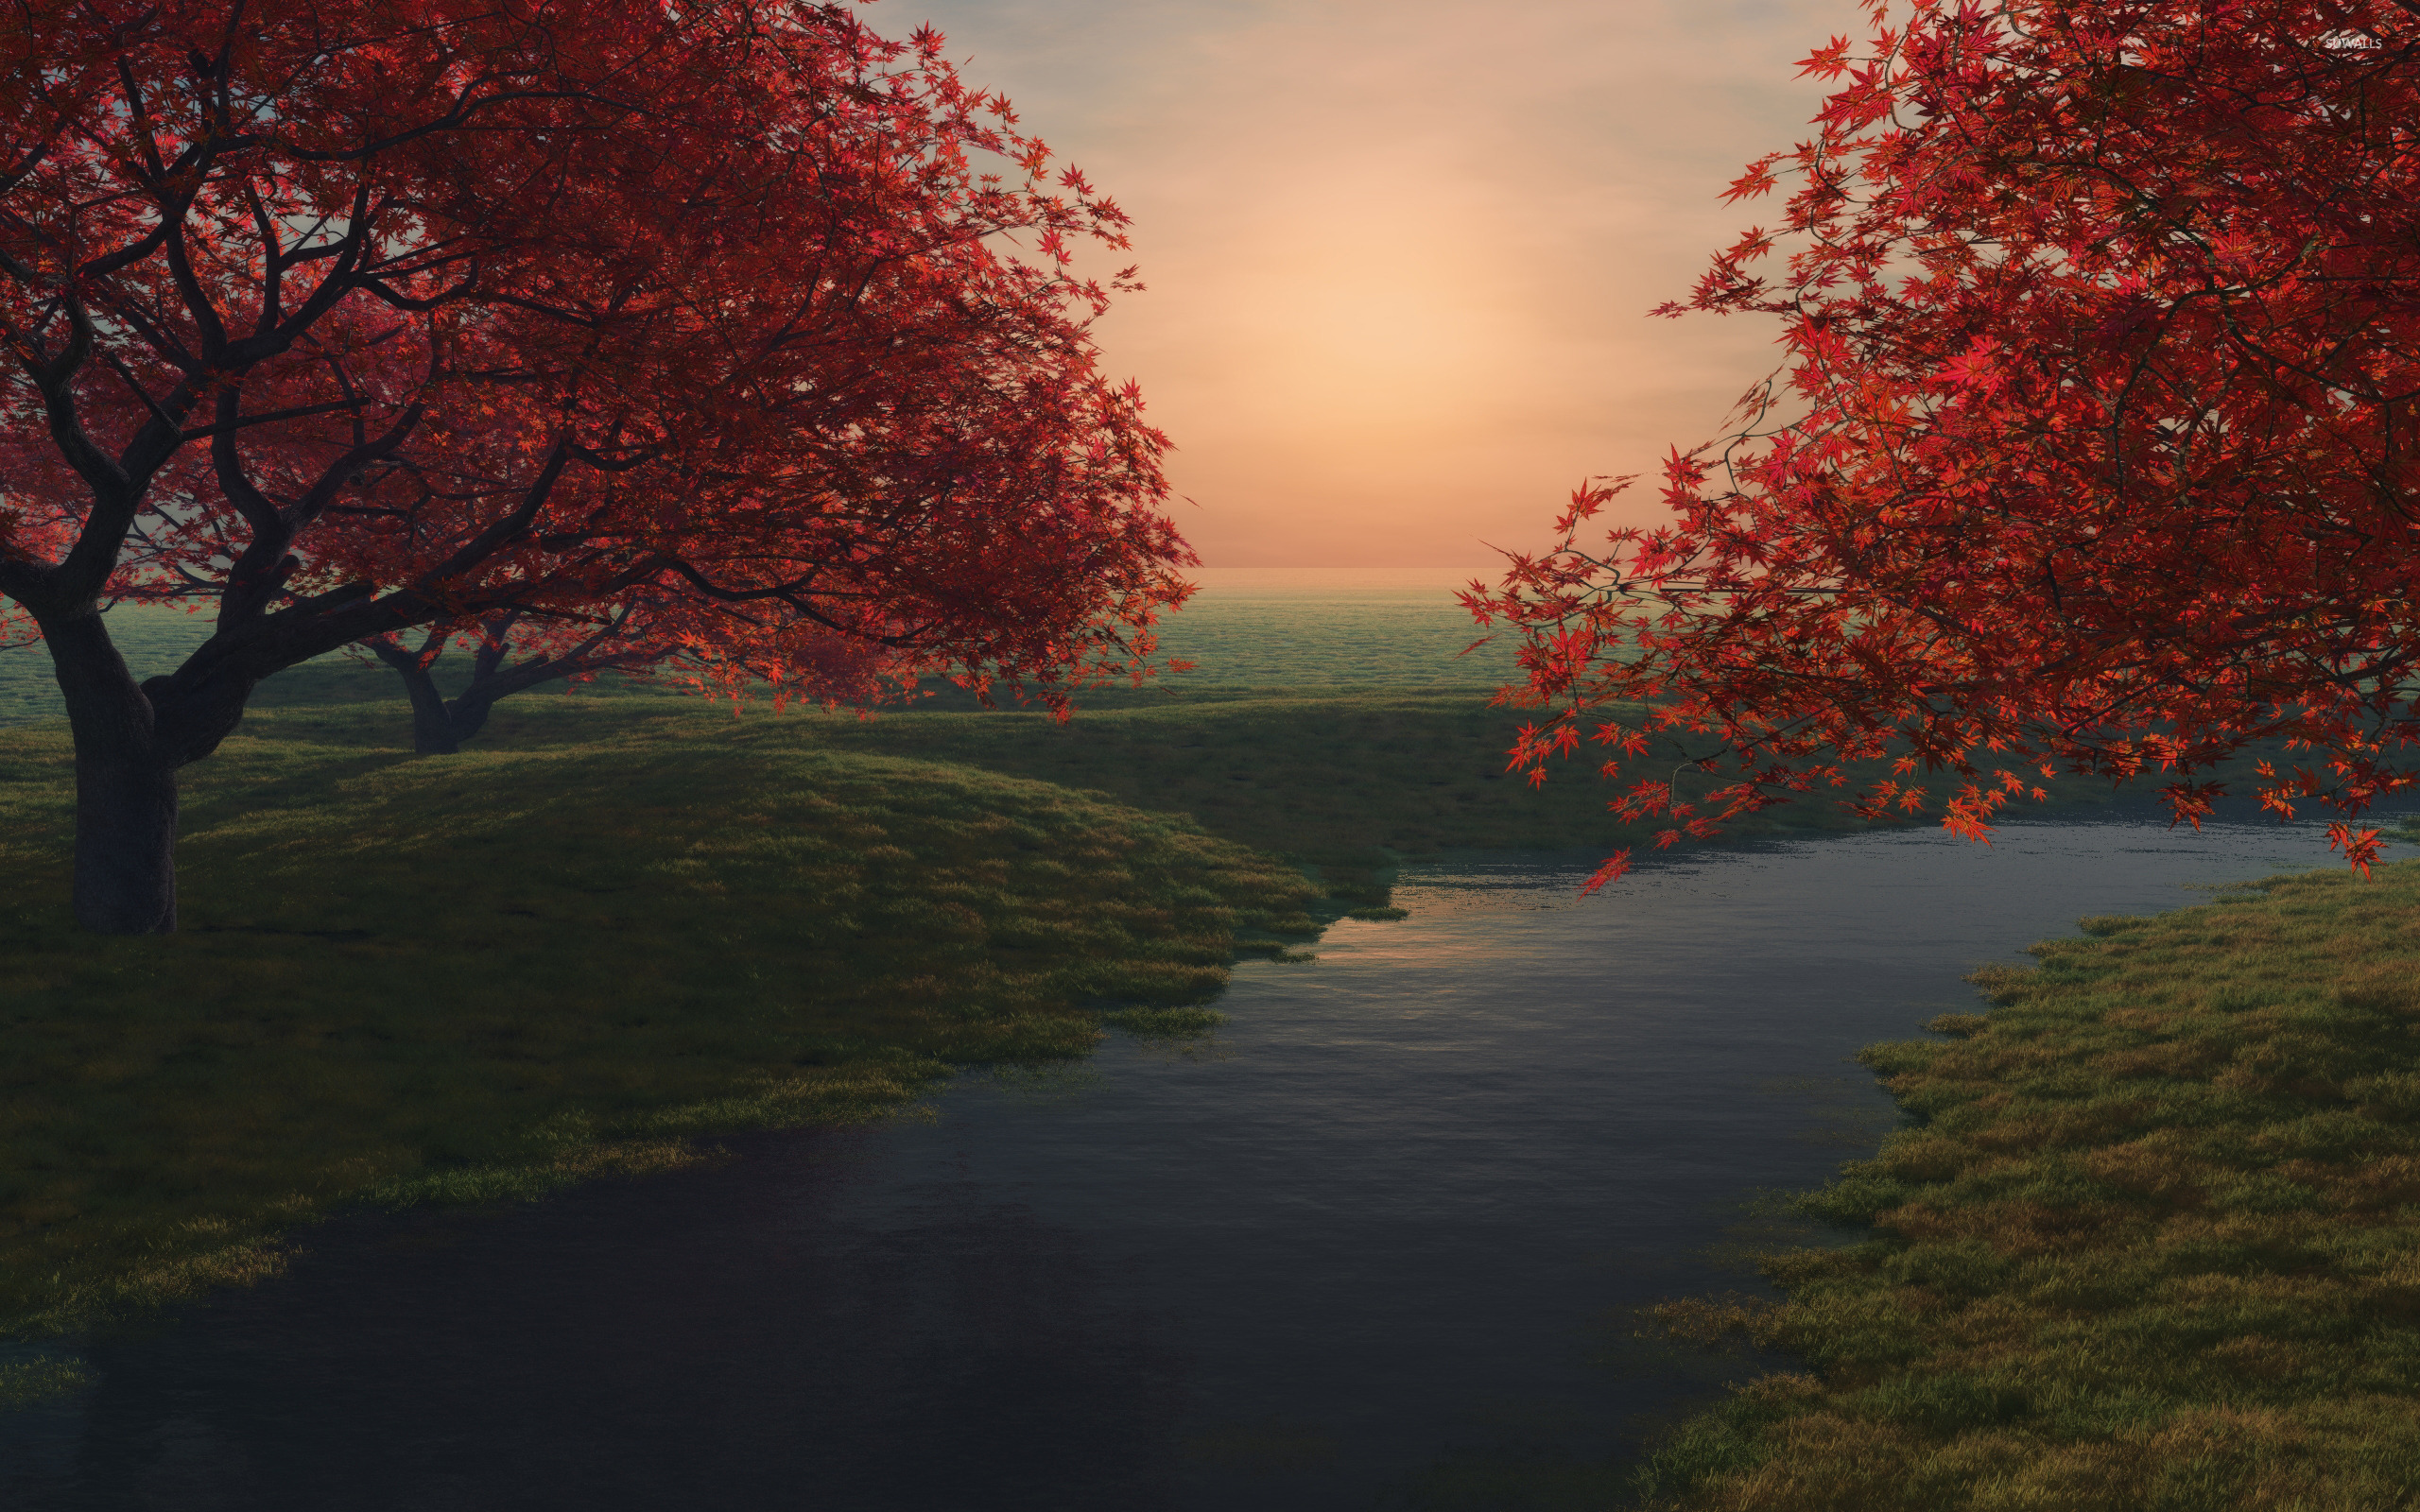 Red maple trees by the river wallpaper - Digital Art ...